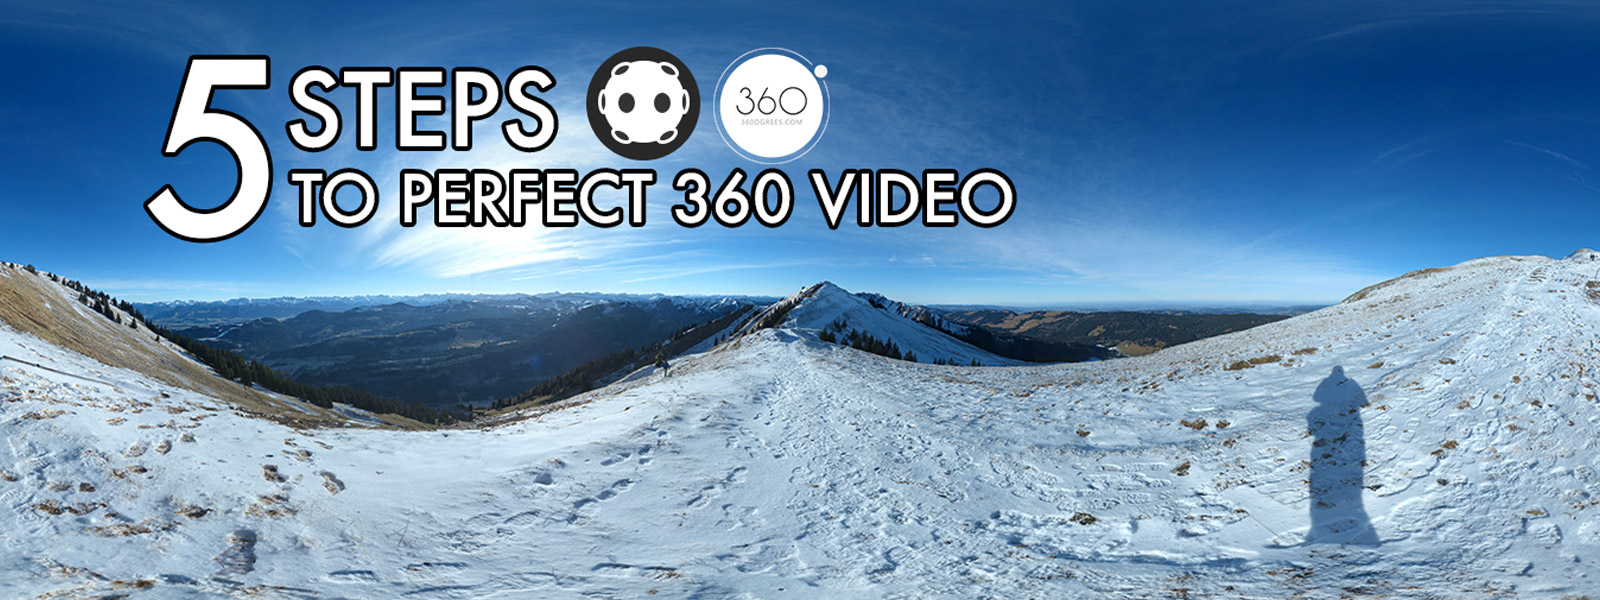 Steps to perfect 360 video